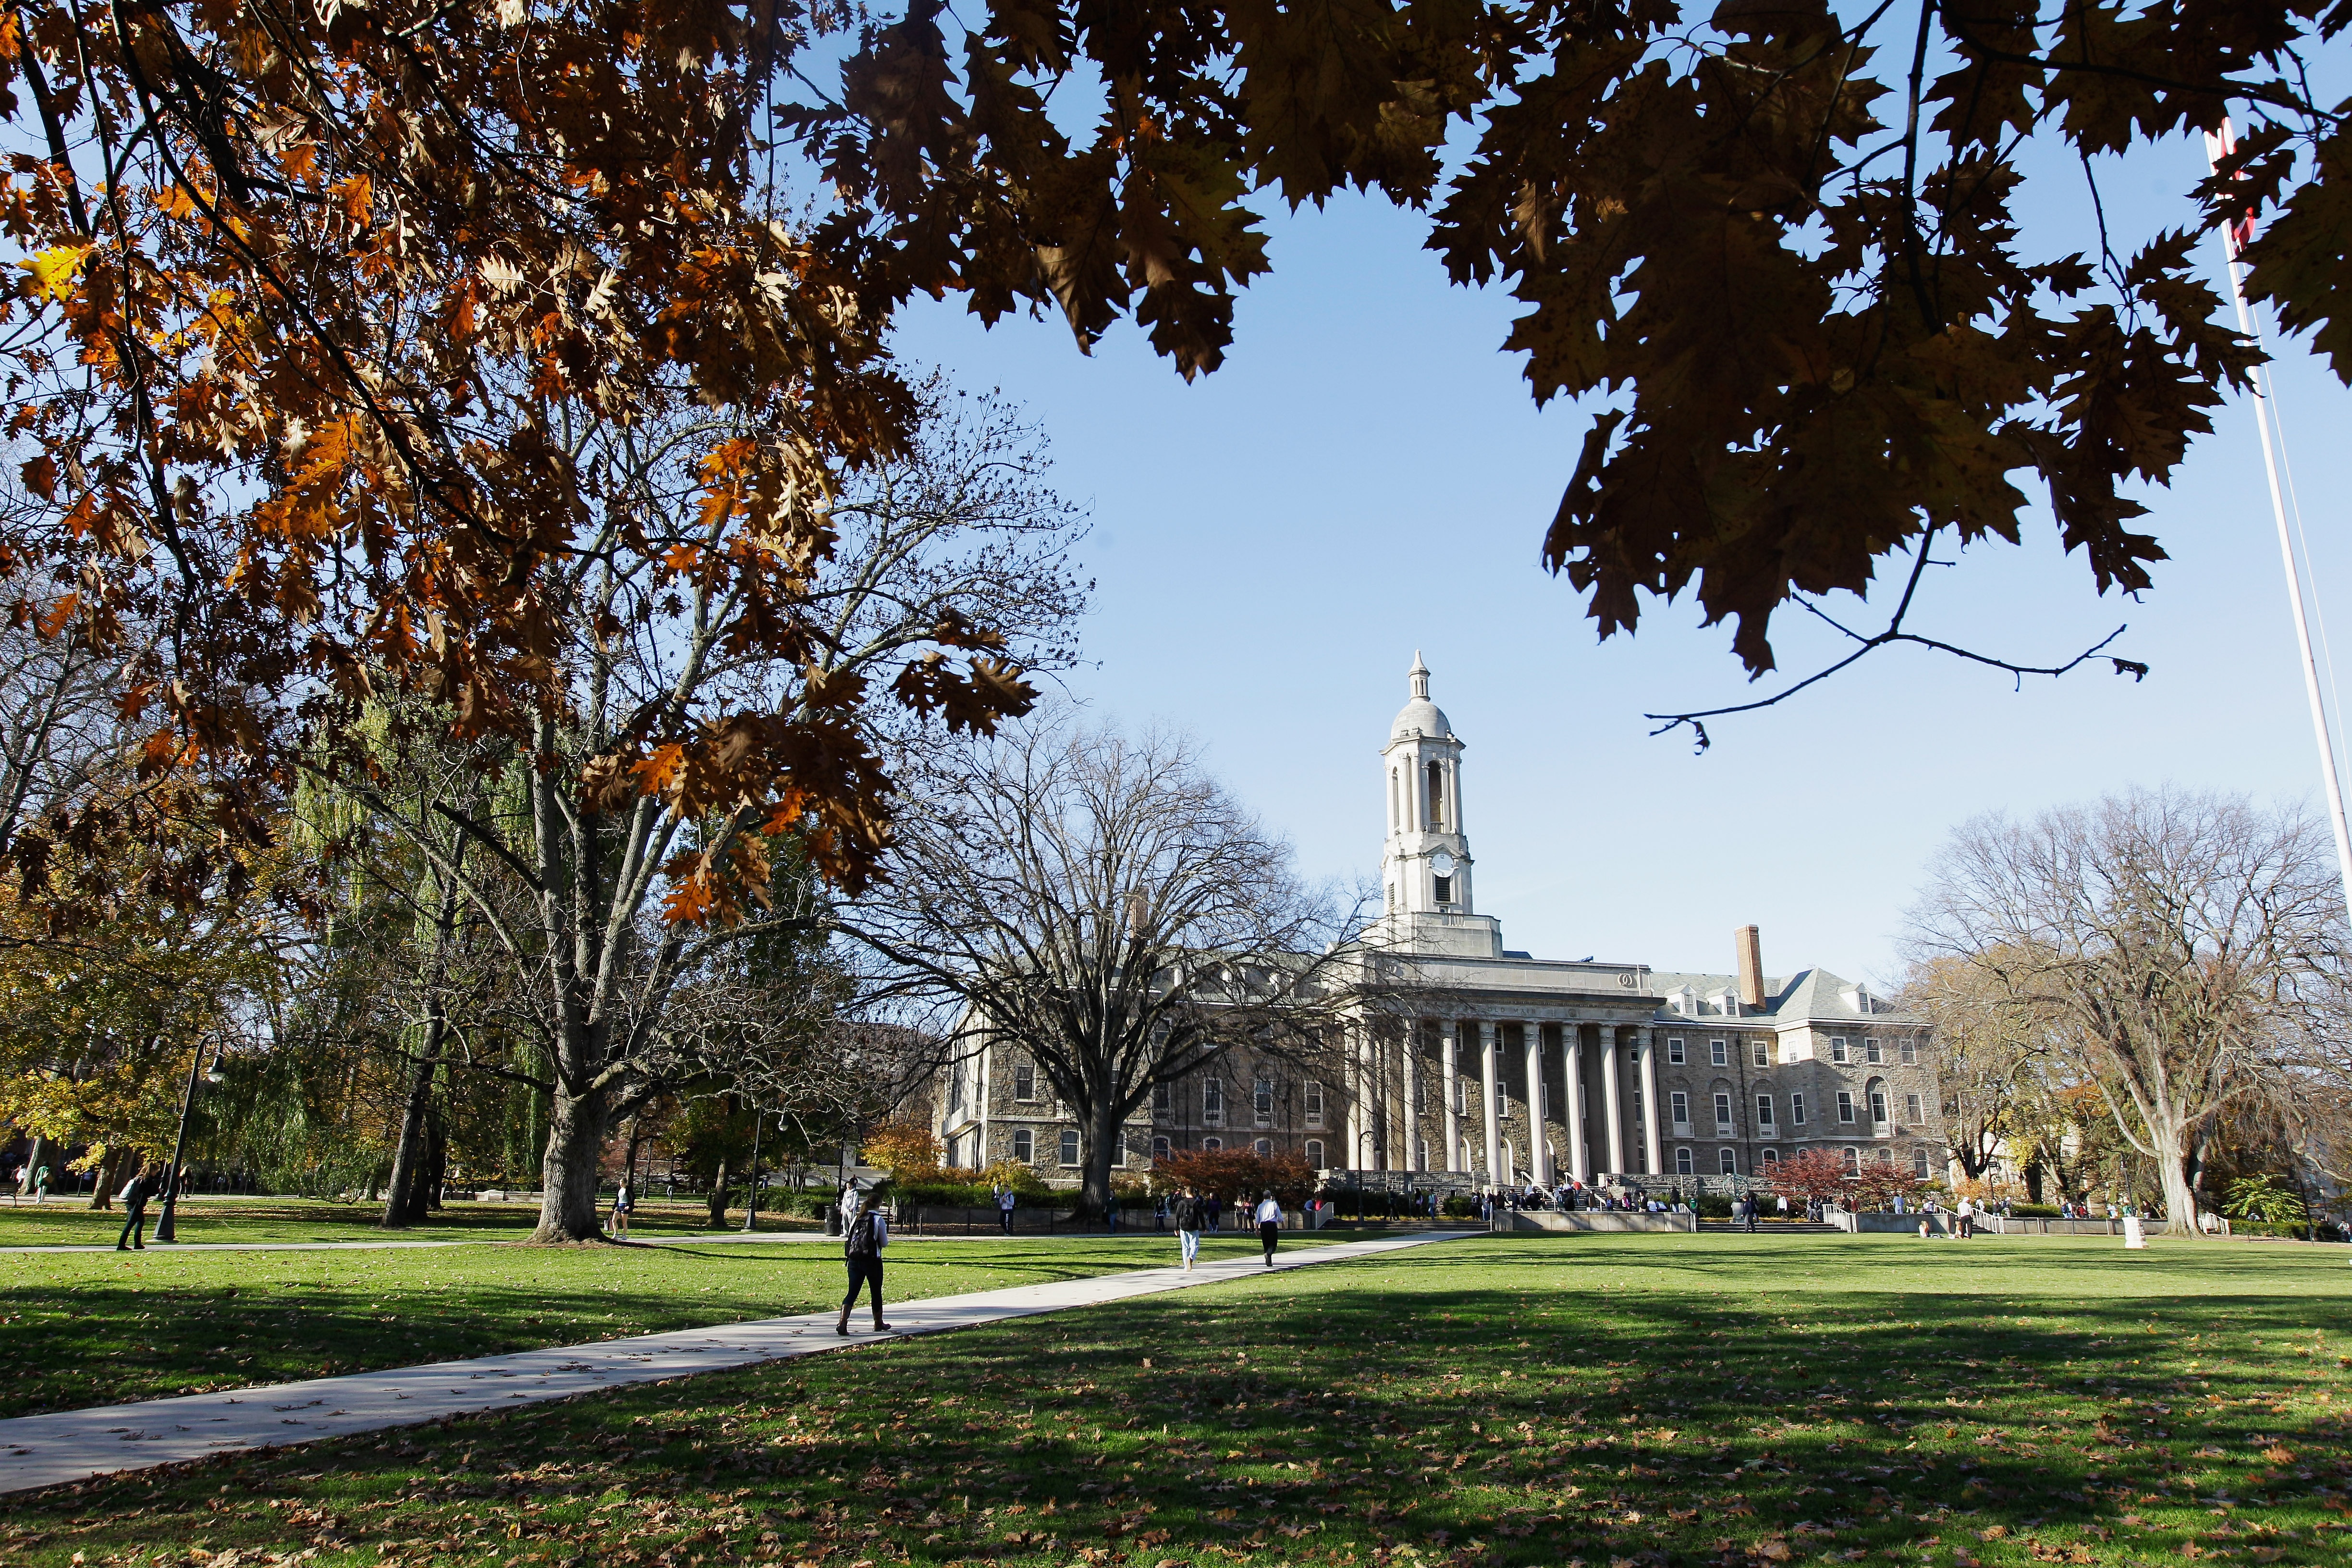 The Penn State University campus pictured on Nov.  8, 2011 in University Park, Pennsylvania.